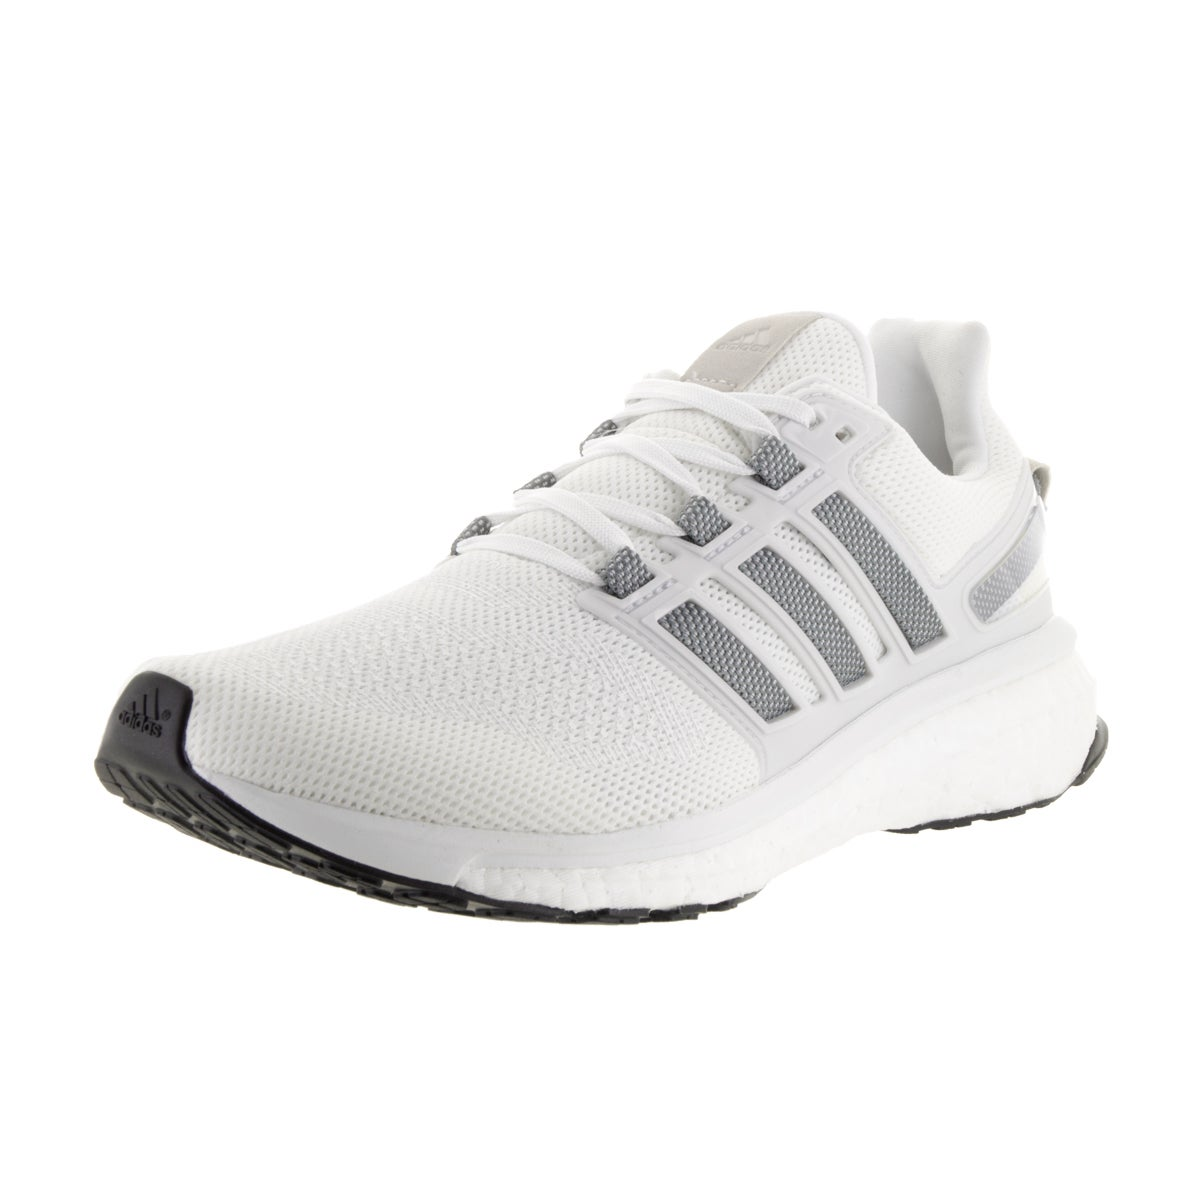 Shop Adidas Men's Energy Boost 3 White Running Shoe - Free Shipping Today -  Overstock.com - 13984301